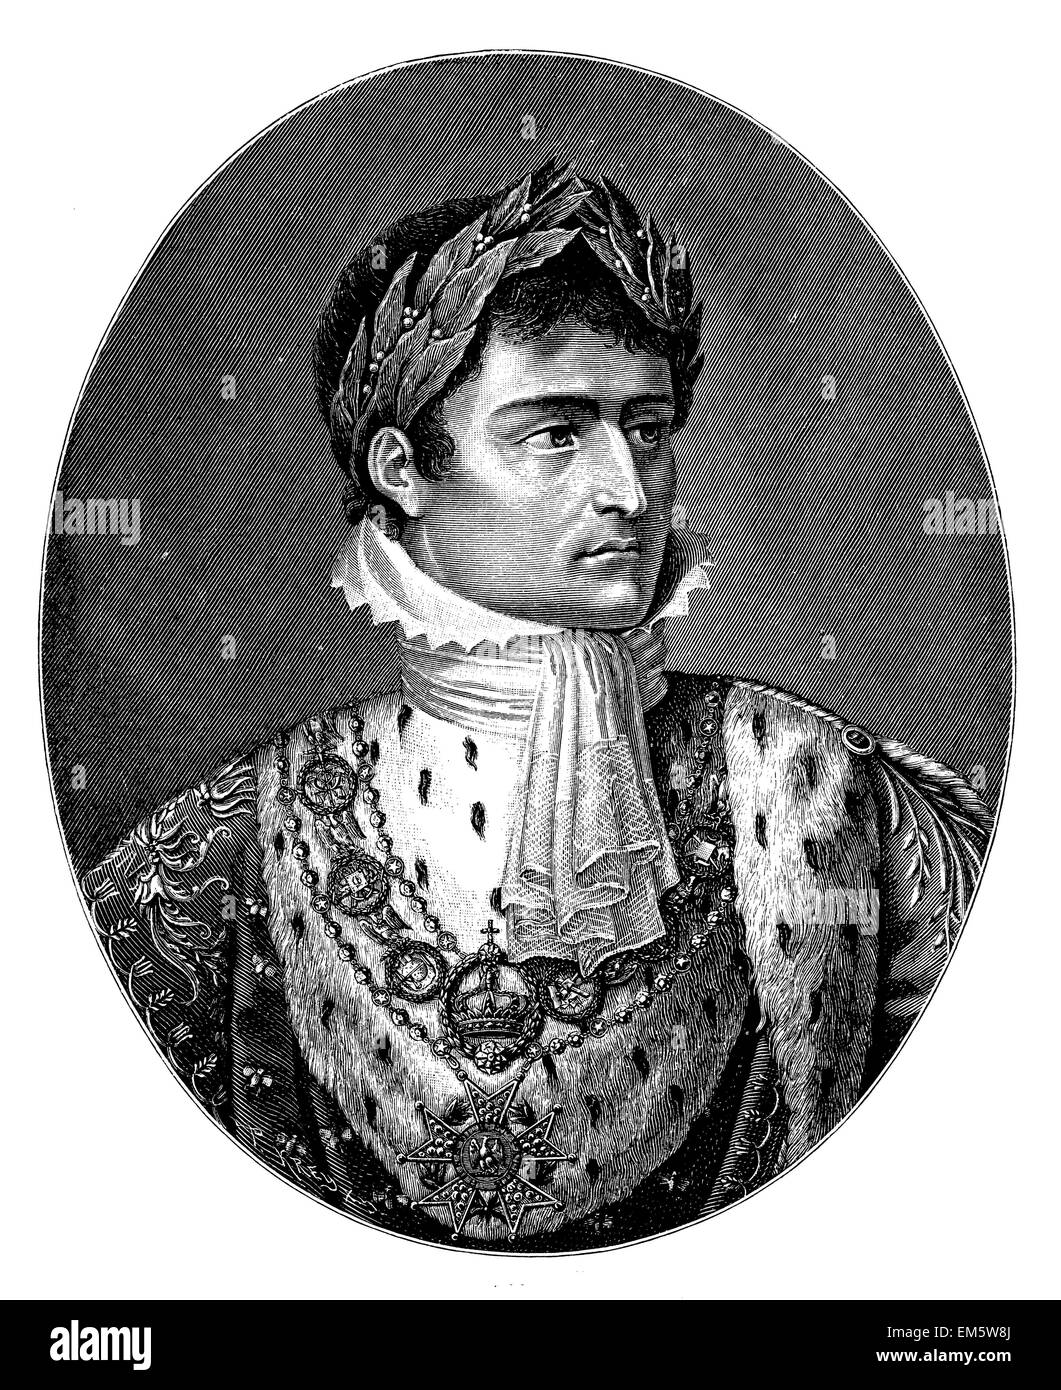 Napoleon I. with laurel wreath After the painting by Charles de Chatillon, engraved by P. Andonin - Stock Image